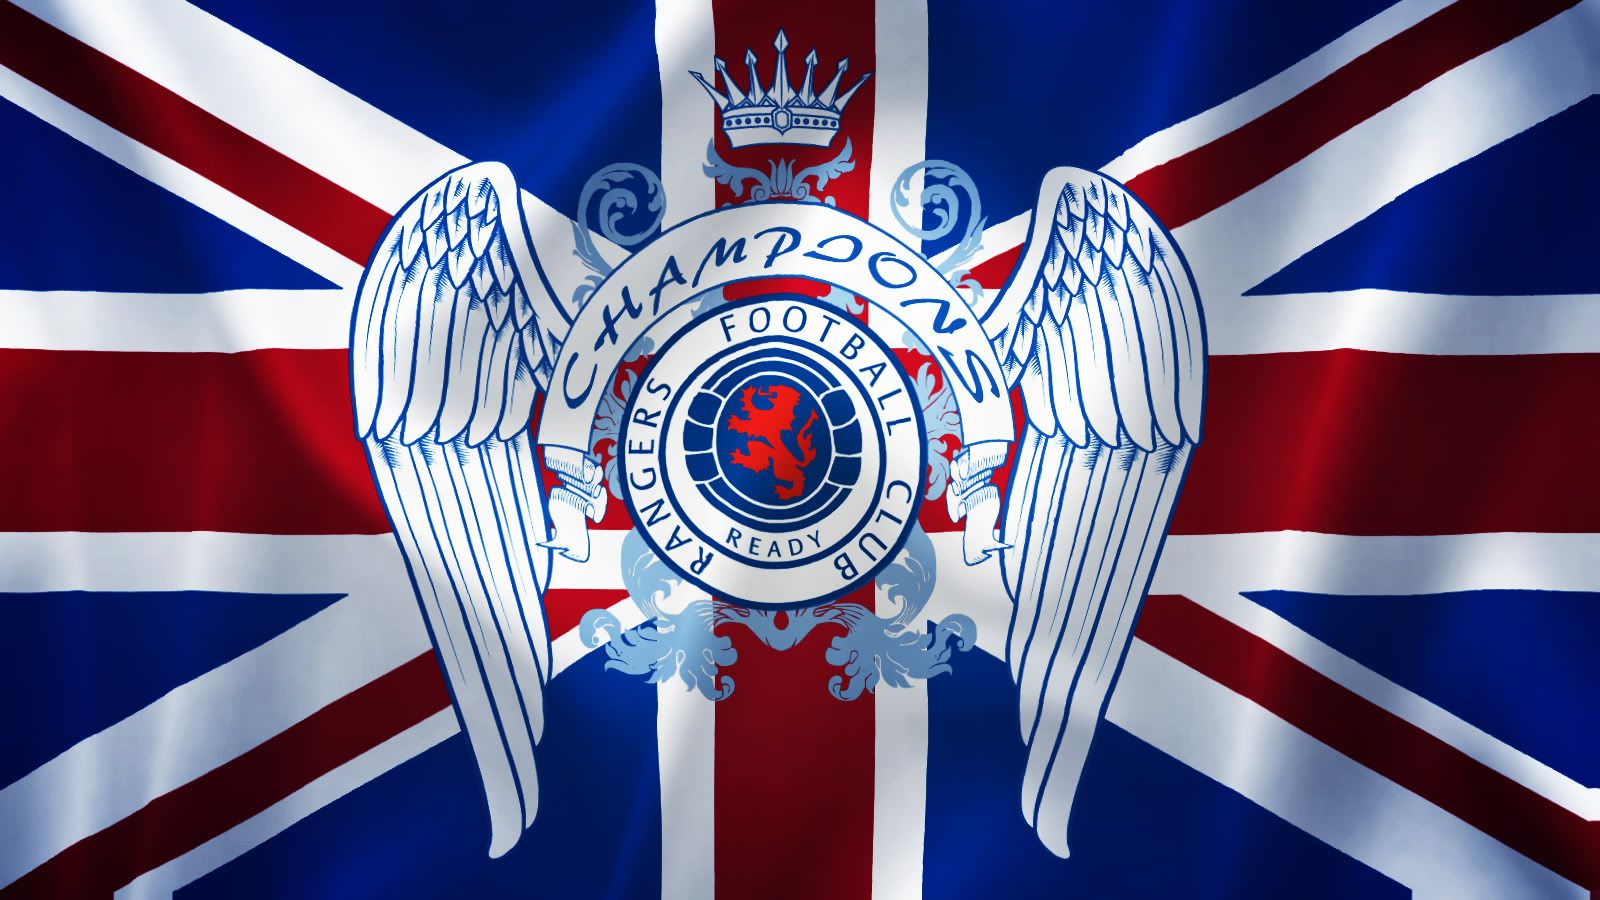 Glasgow Rangers Wallpaper Pictures Images Photos